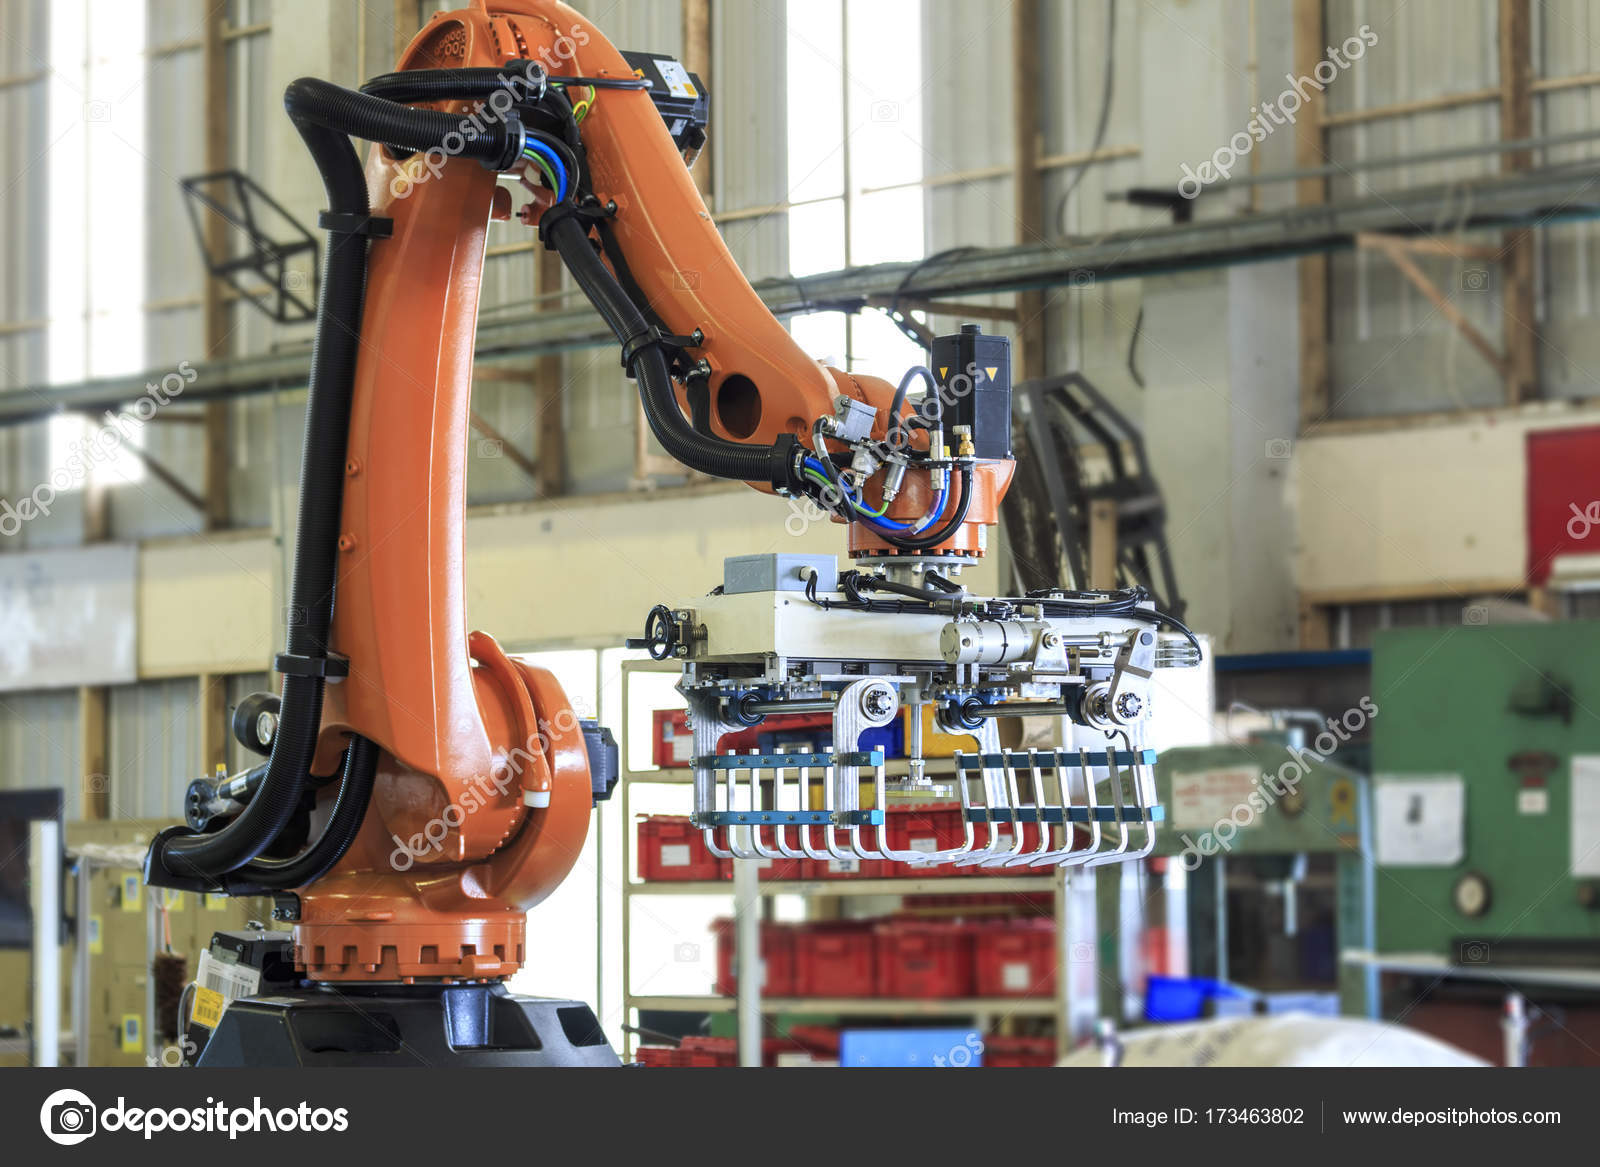 Industry 4 0 concept   Industrial picking robot in smart warehouse